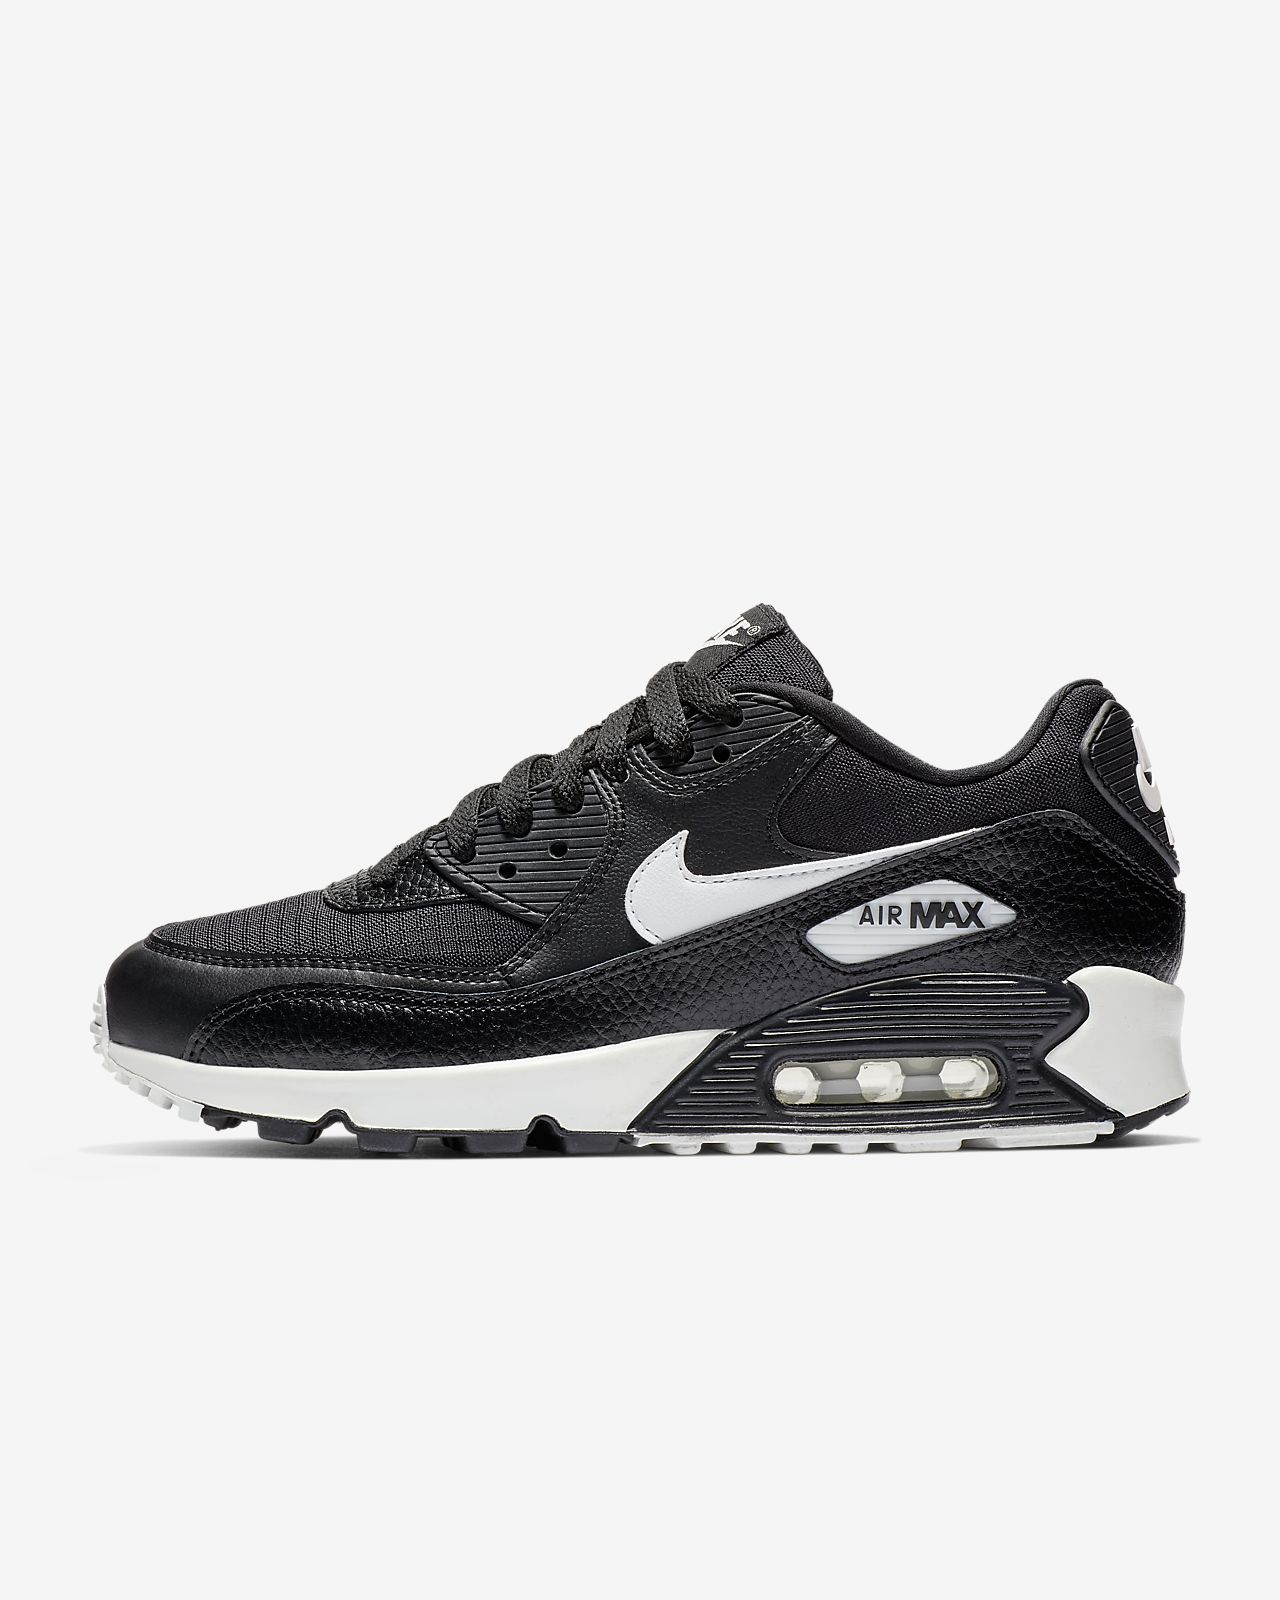 super popular 9b319 24a63 Women s Shoe. Nike Air Max 90